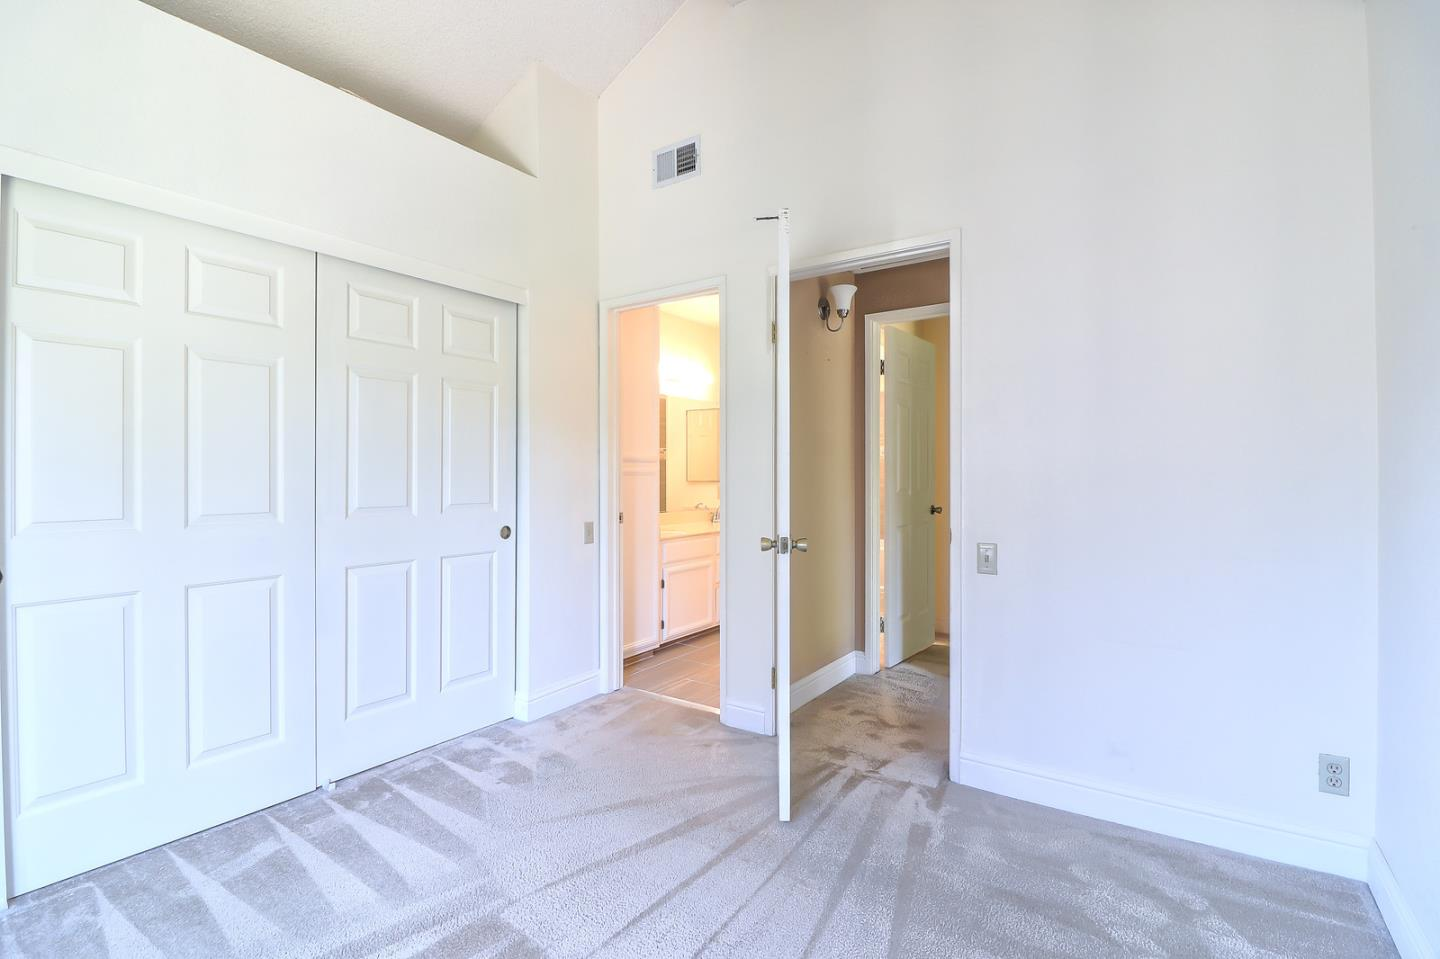 Additional photo for property listing at 2570 Yerba Bank Court  San Jose, カリフォルニア 95121 アメリカ合衆国